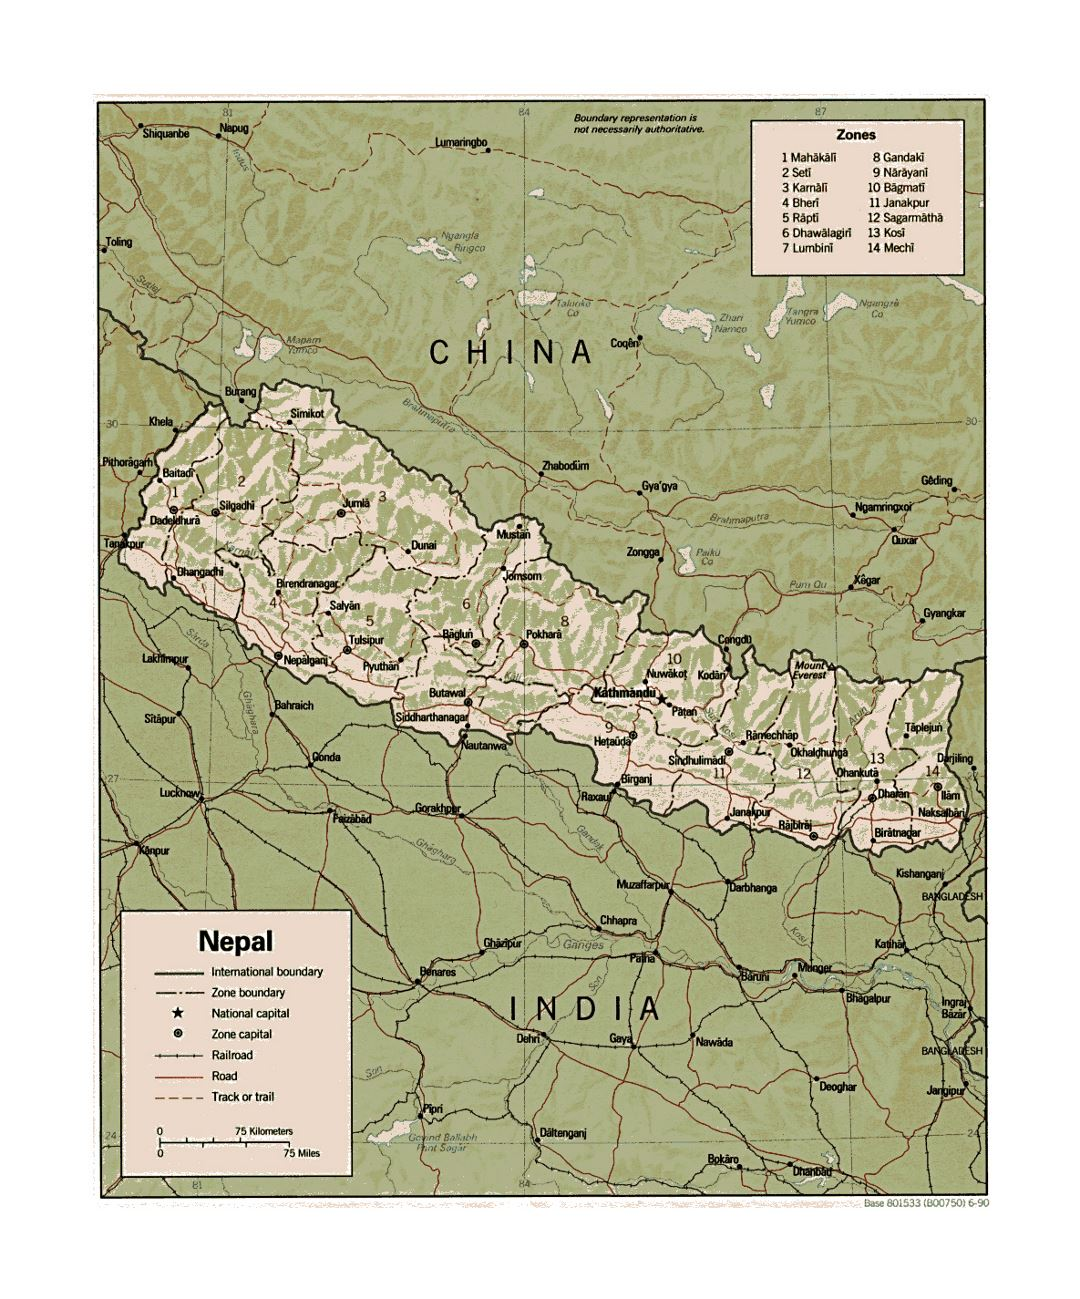 Detailed political and administrative map of Nepal with relief, roads, railroads and major cities - 1990